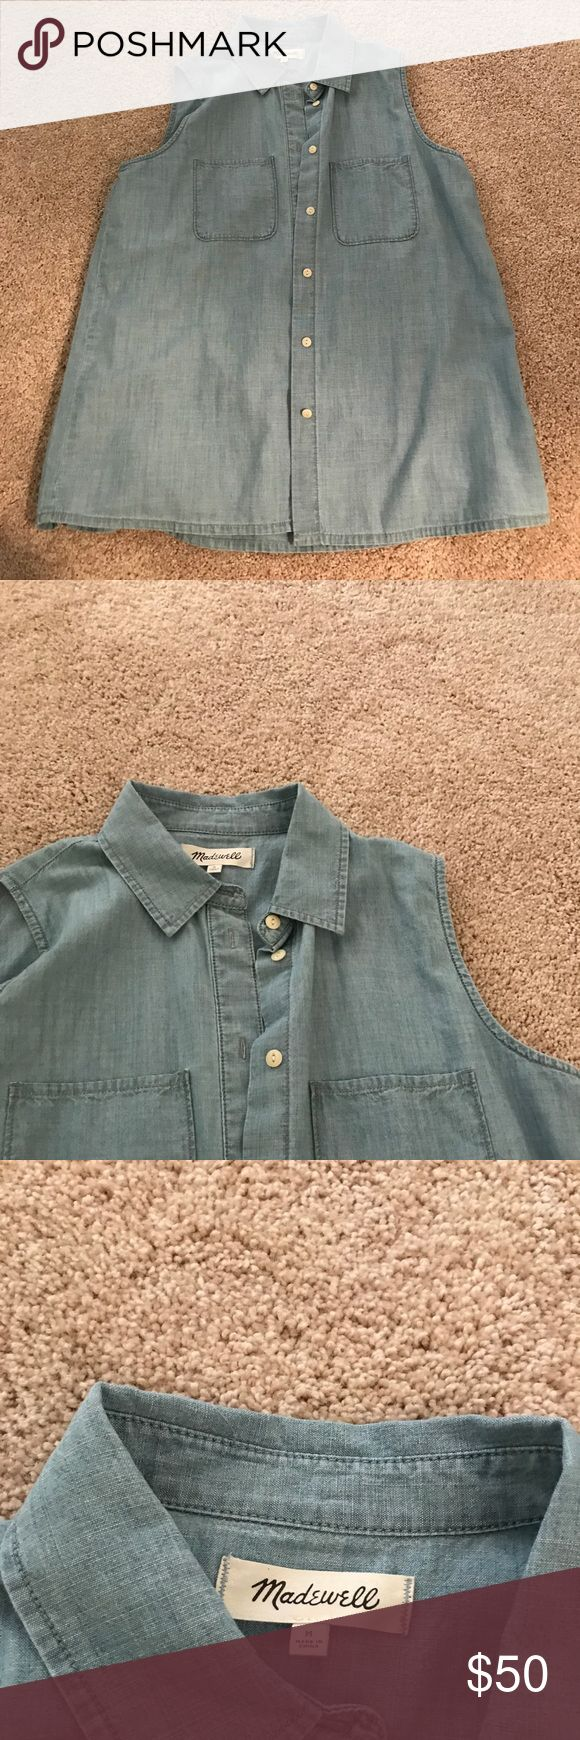 Madewell sleeveless denim shirt Sleeveless denim shirt. Fit is loose around the stomach. Size medium. Great for layering under a cardigan or pullover sweater. Color is light denim Madewell Tops